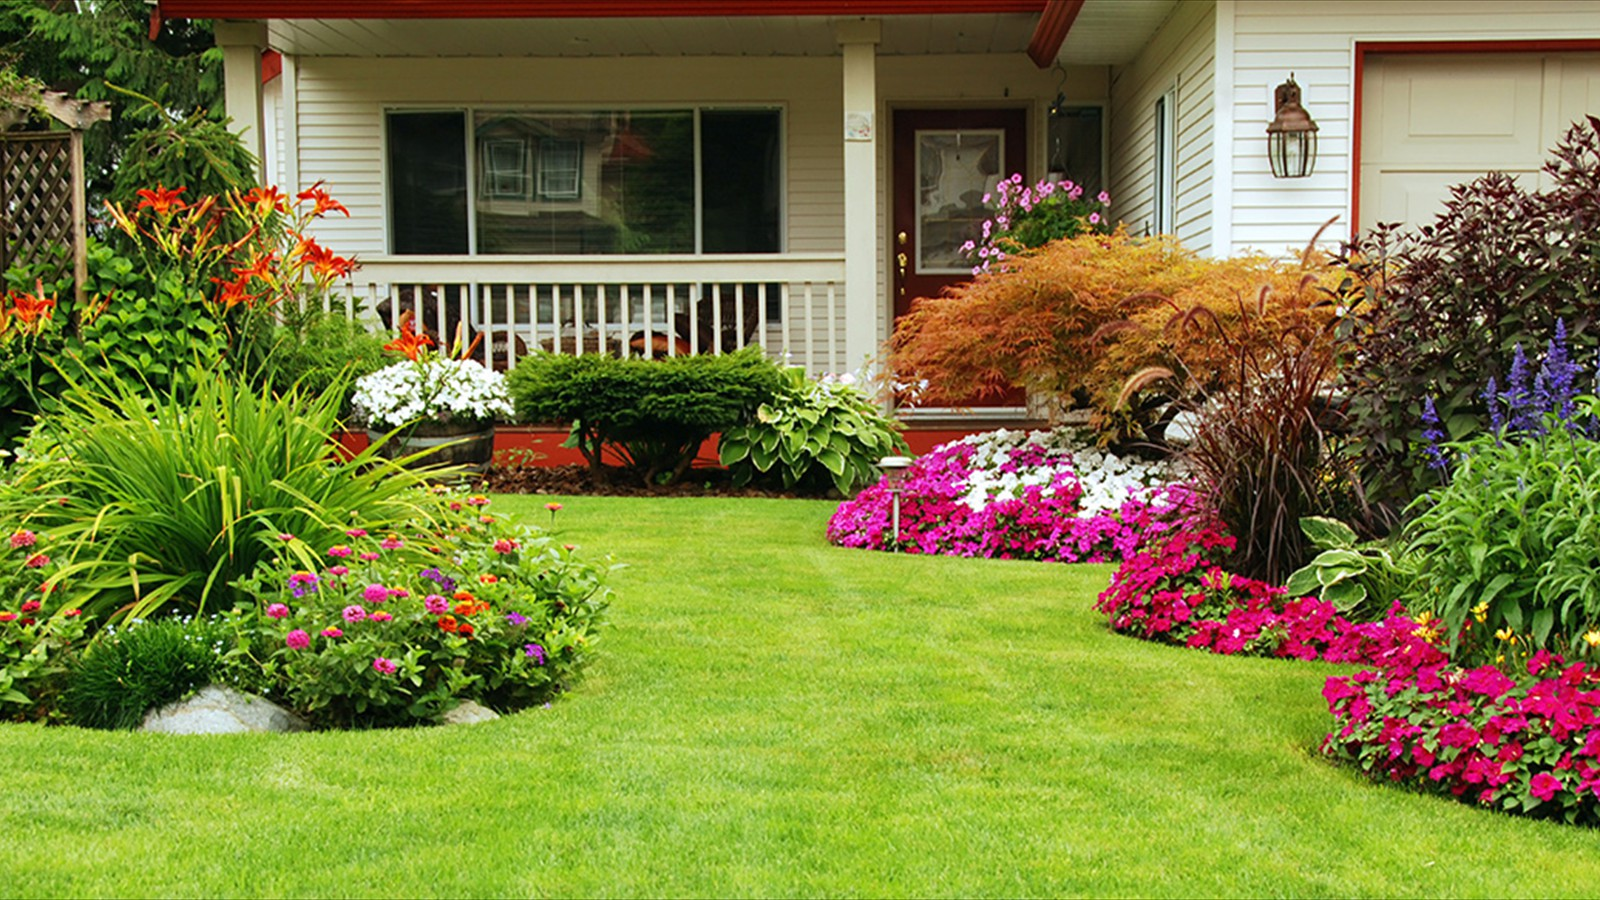 Lawn Maintenance for Your Lawn, Shrubs & Trees.